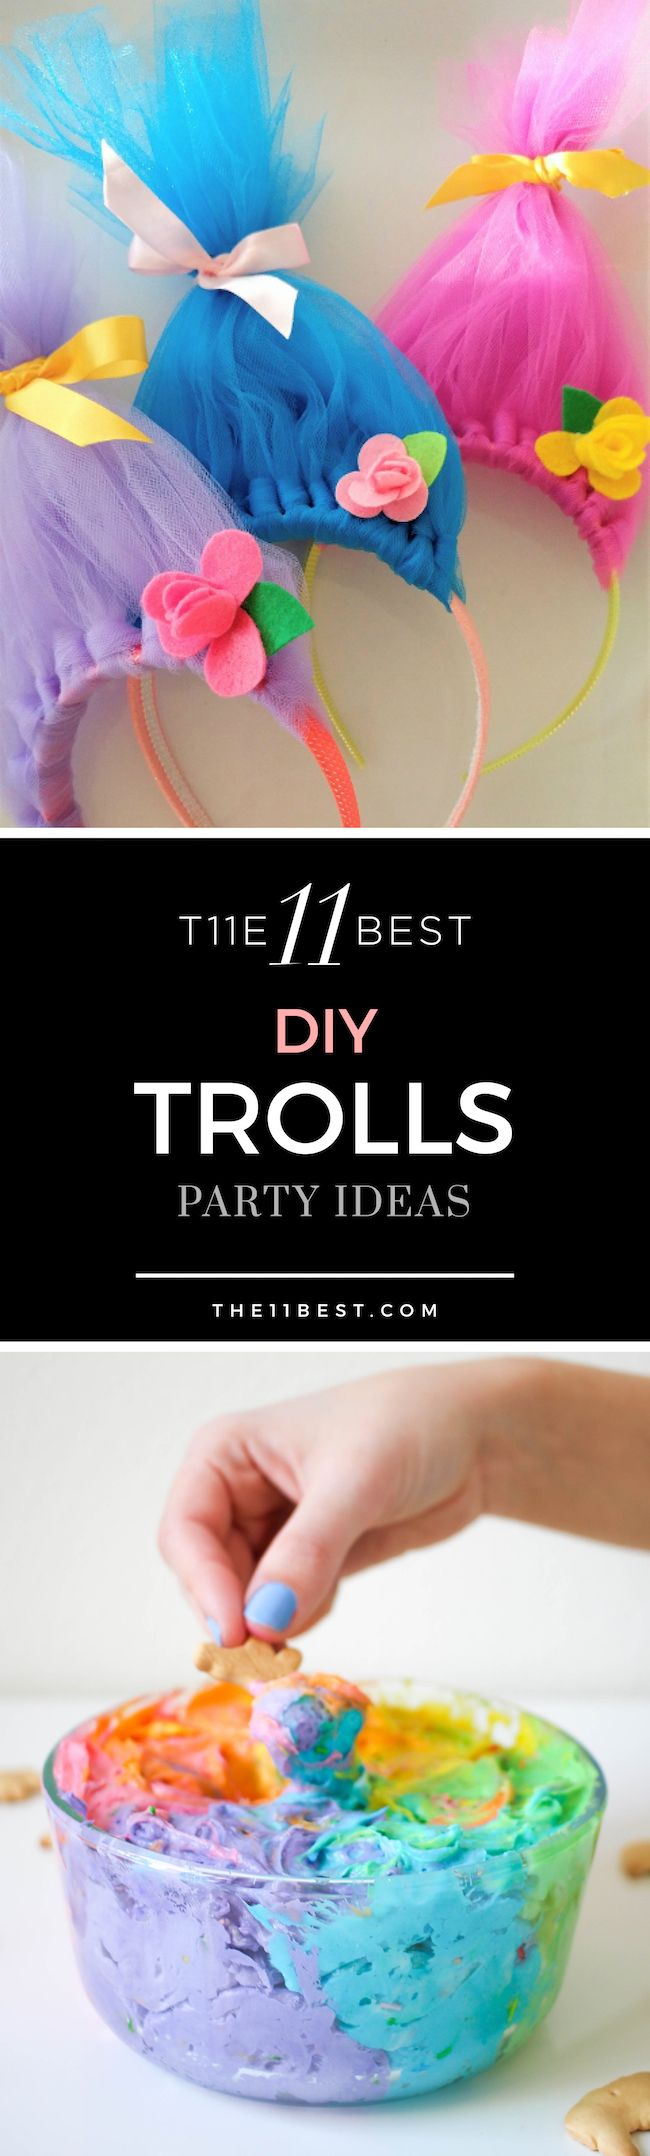 DIY Trolls party ideas. Trolls birthday party.